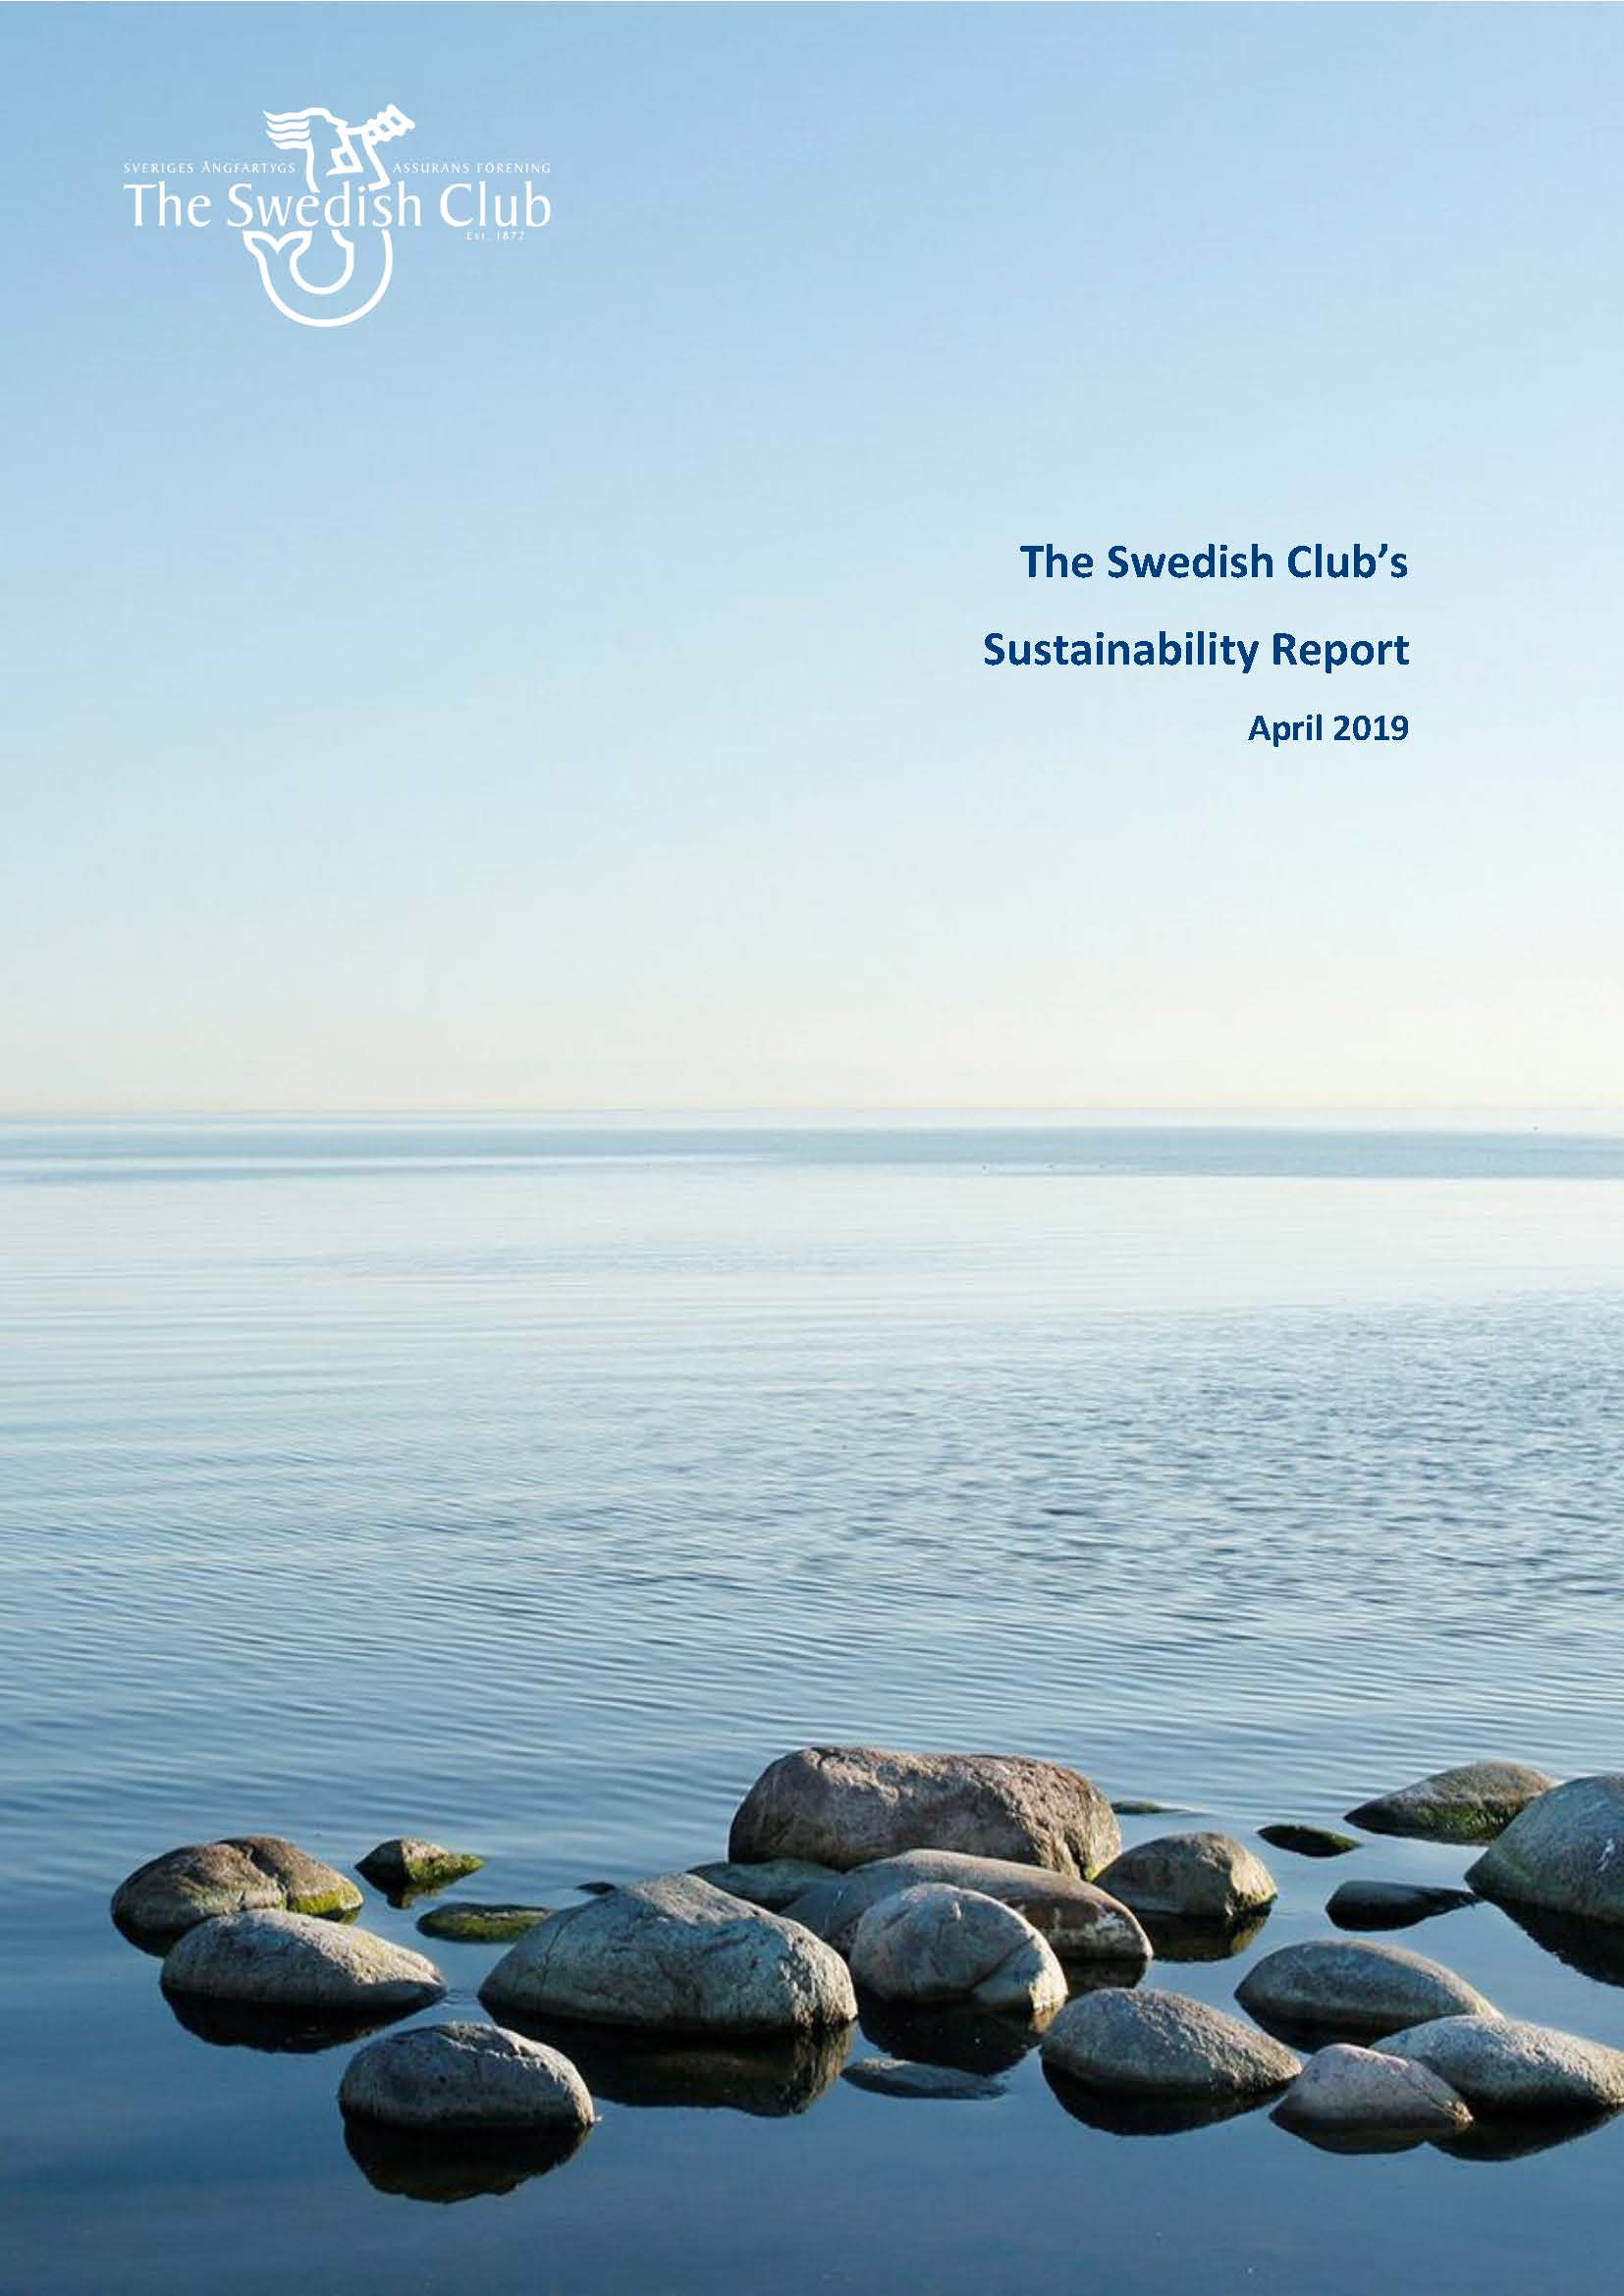 The Swedish Club's Sustainability Report 2019